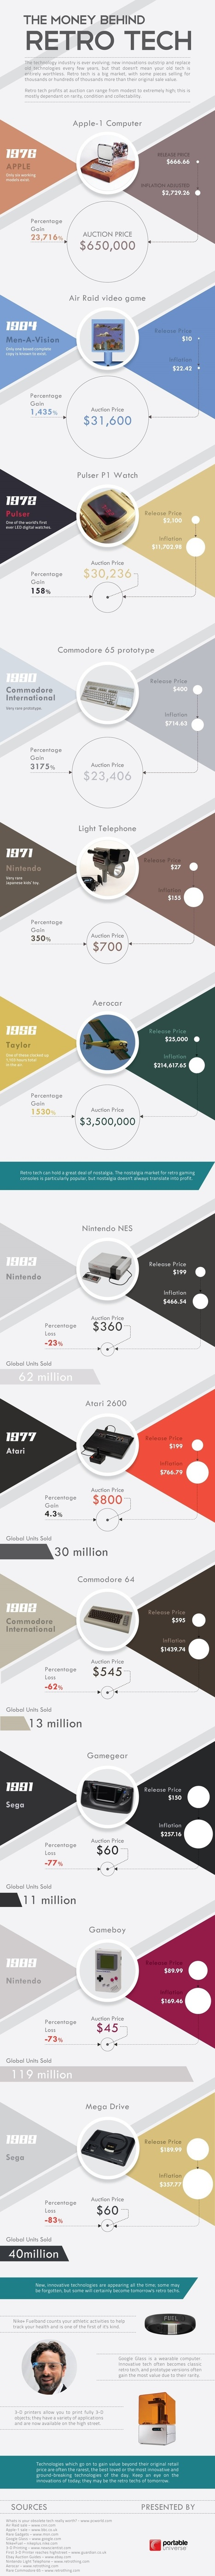 The Money Behind Retro Tech [Infographic] - Business 2 Community | Business Industry Infographics | Scoop.it